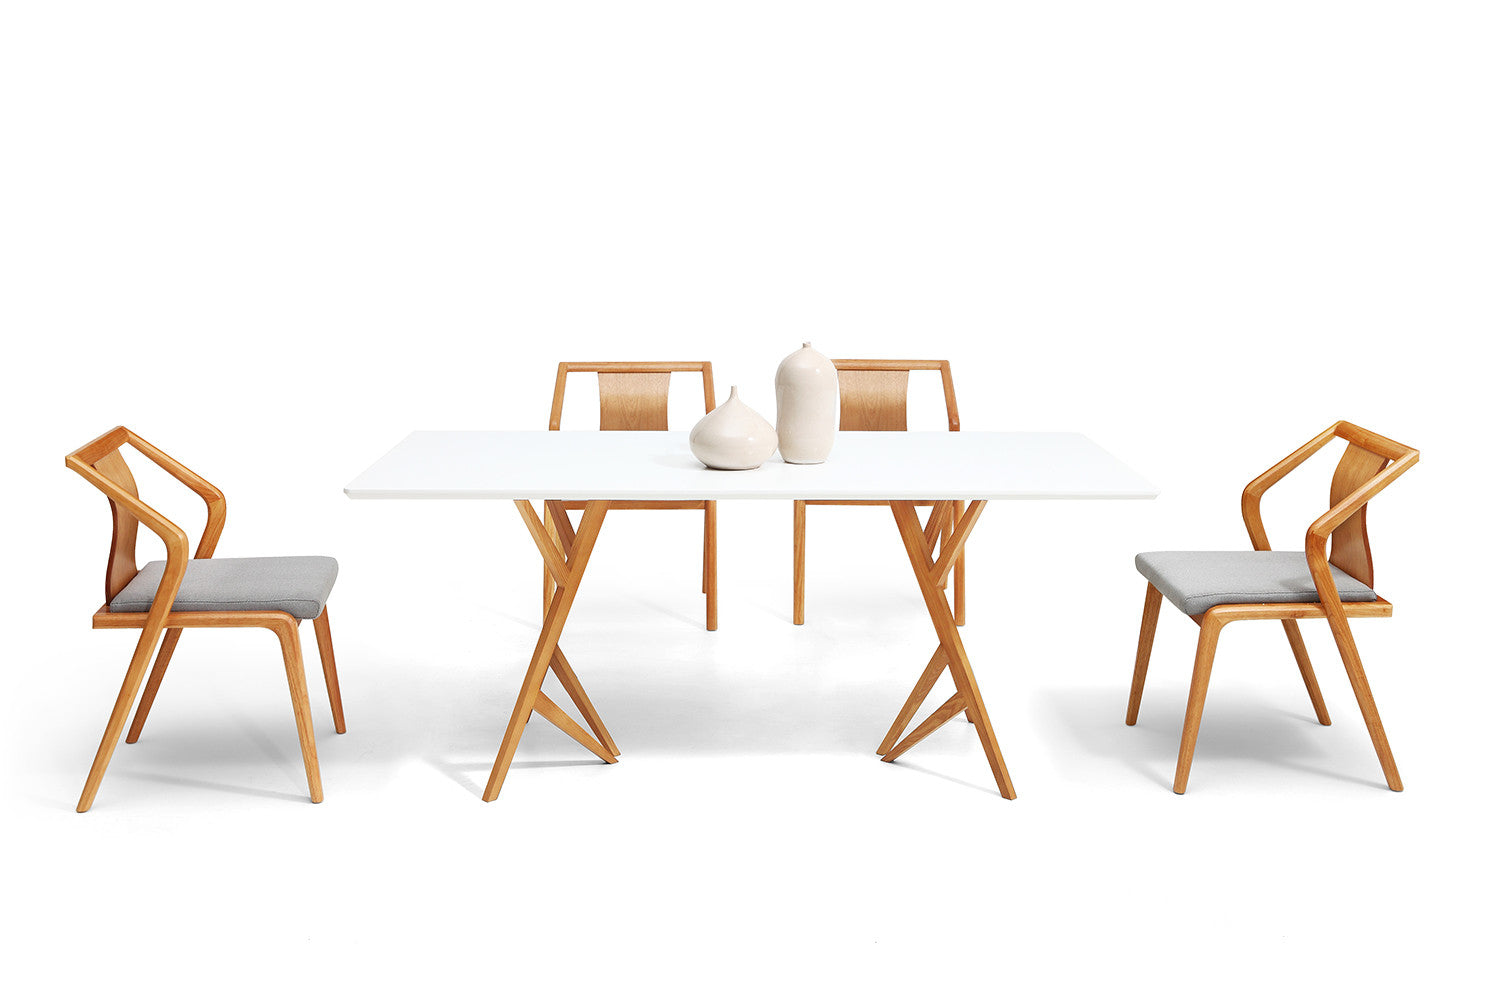 Table de salle manger design scandinave vispa dewarens - Dimensions table a manger ...